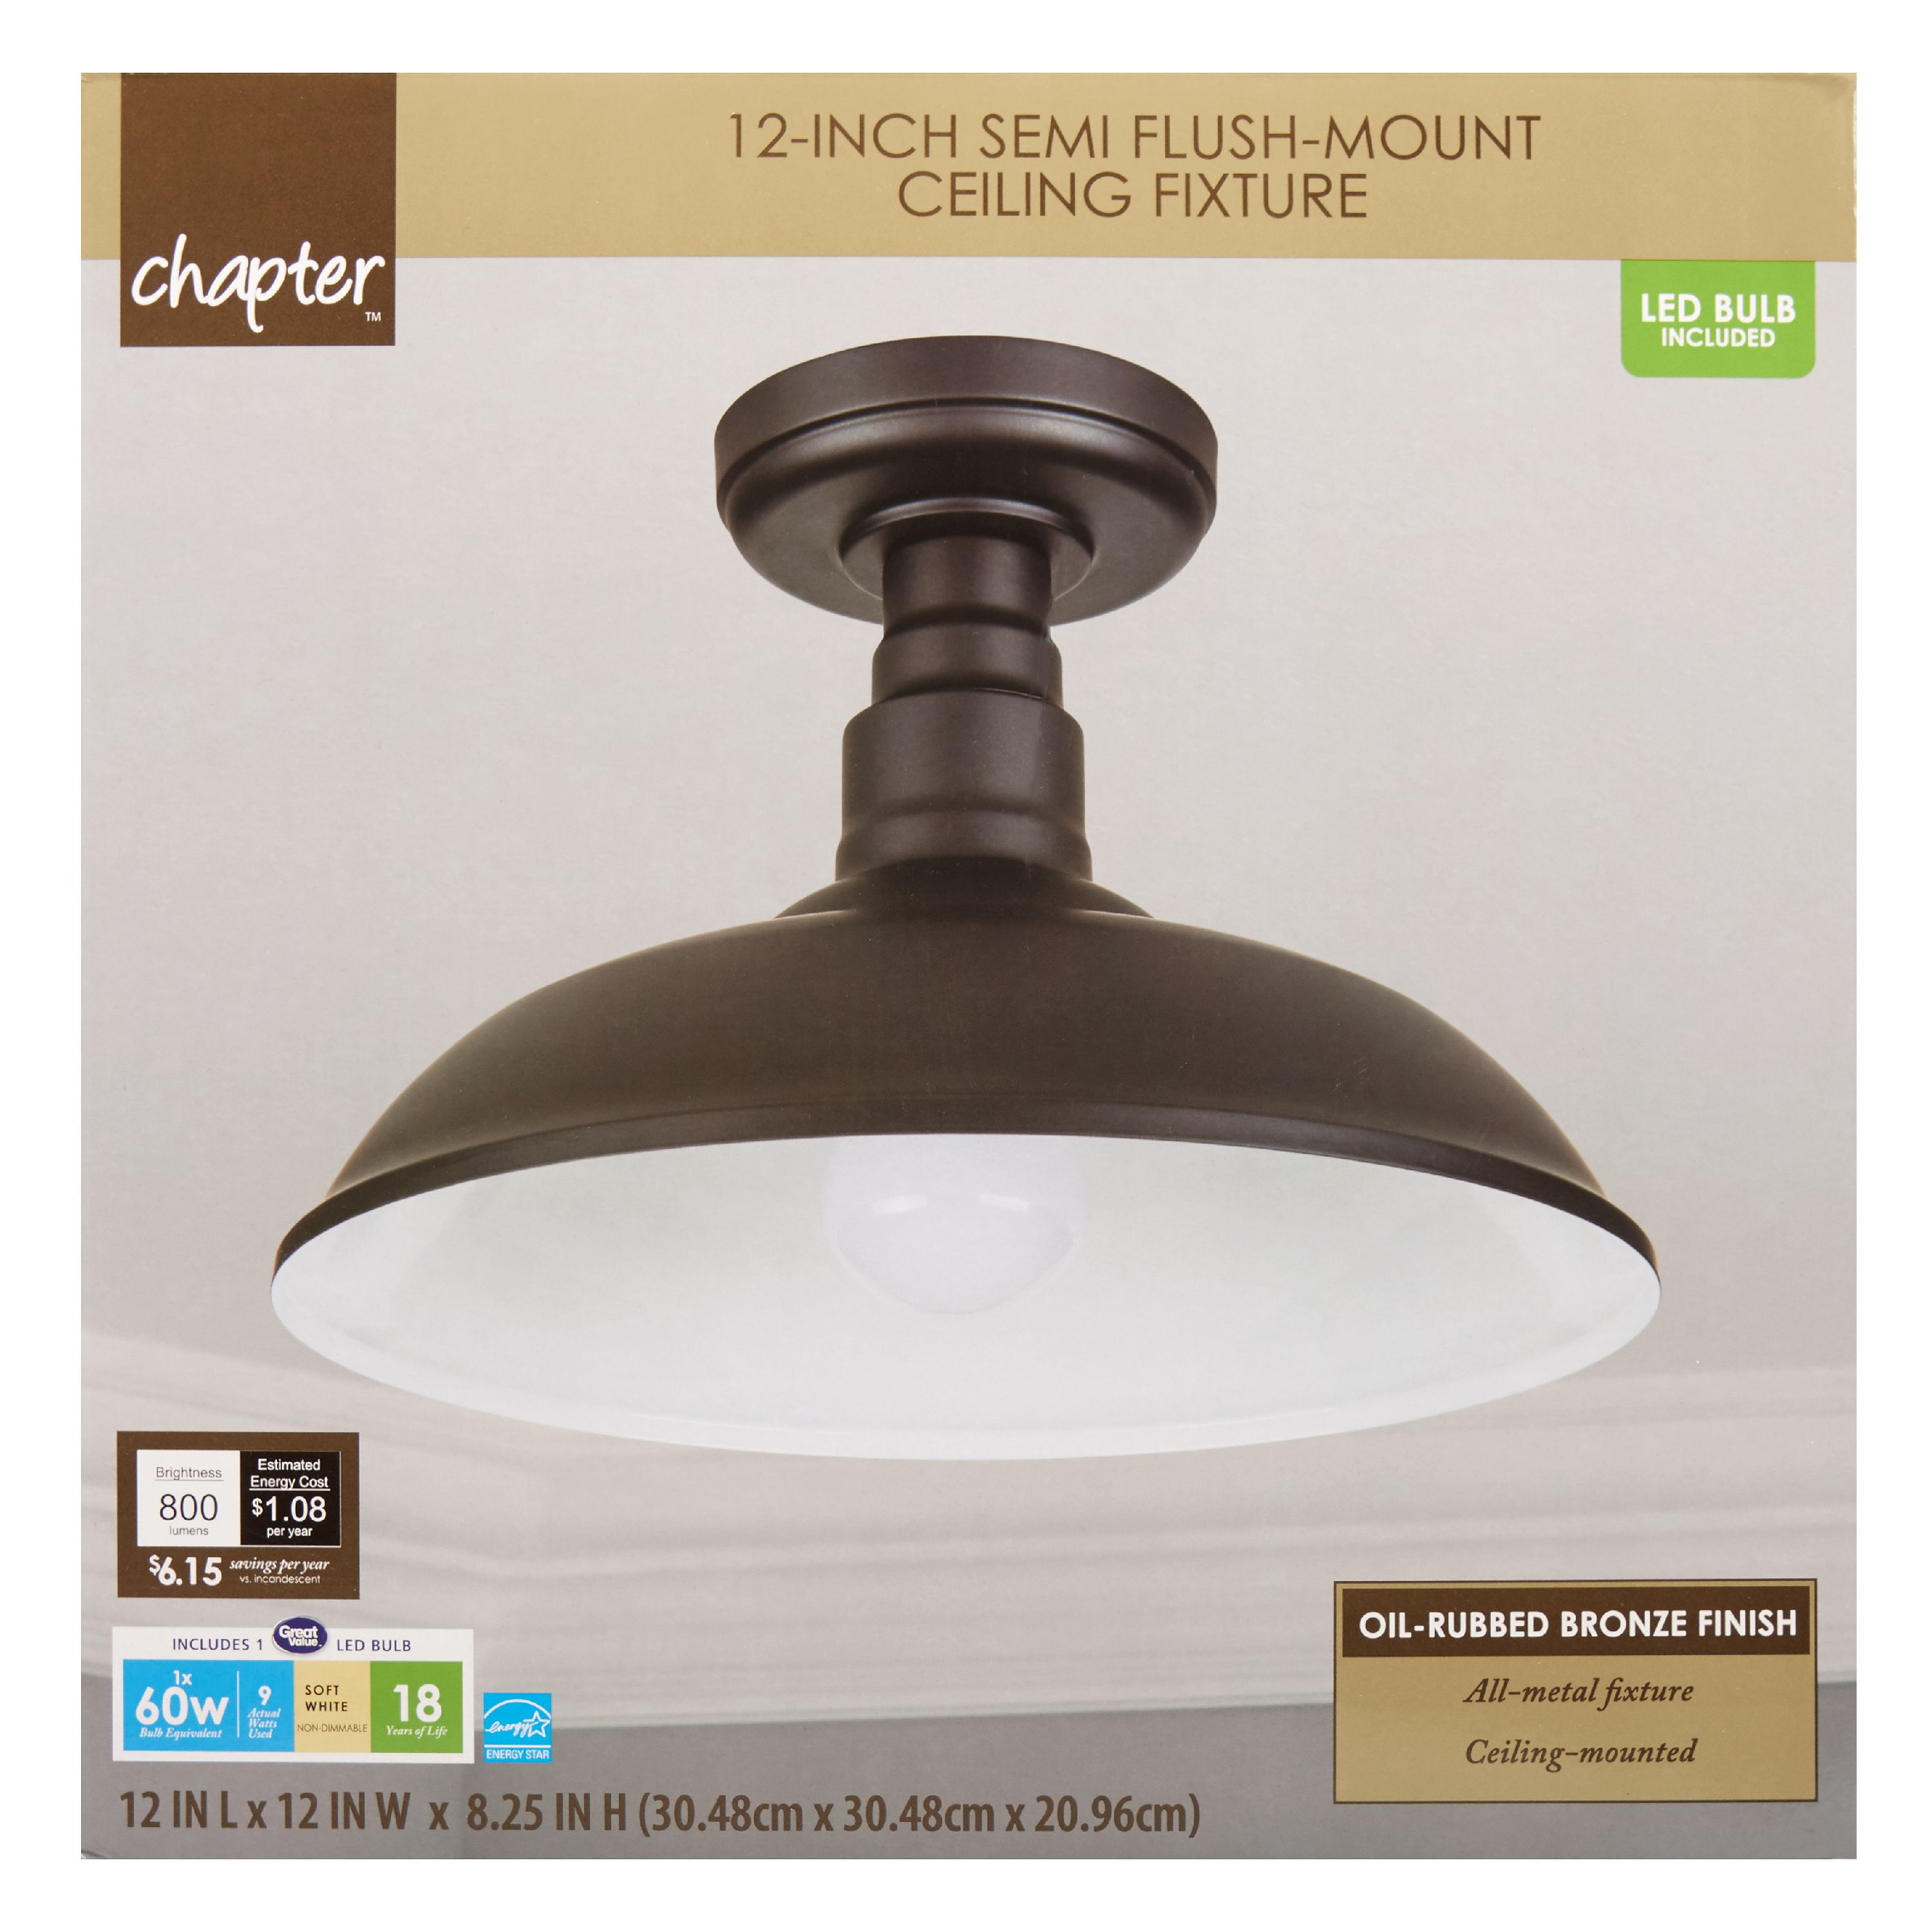 "Chapter 12"" LED Decorative Indoor Semi Flush-Mount Ceiling Fixture, Oil-Rubbed Bronze"